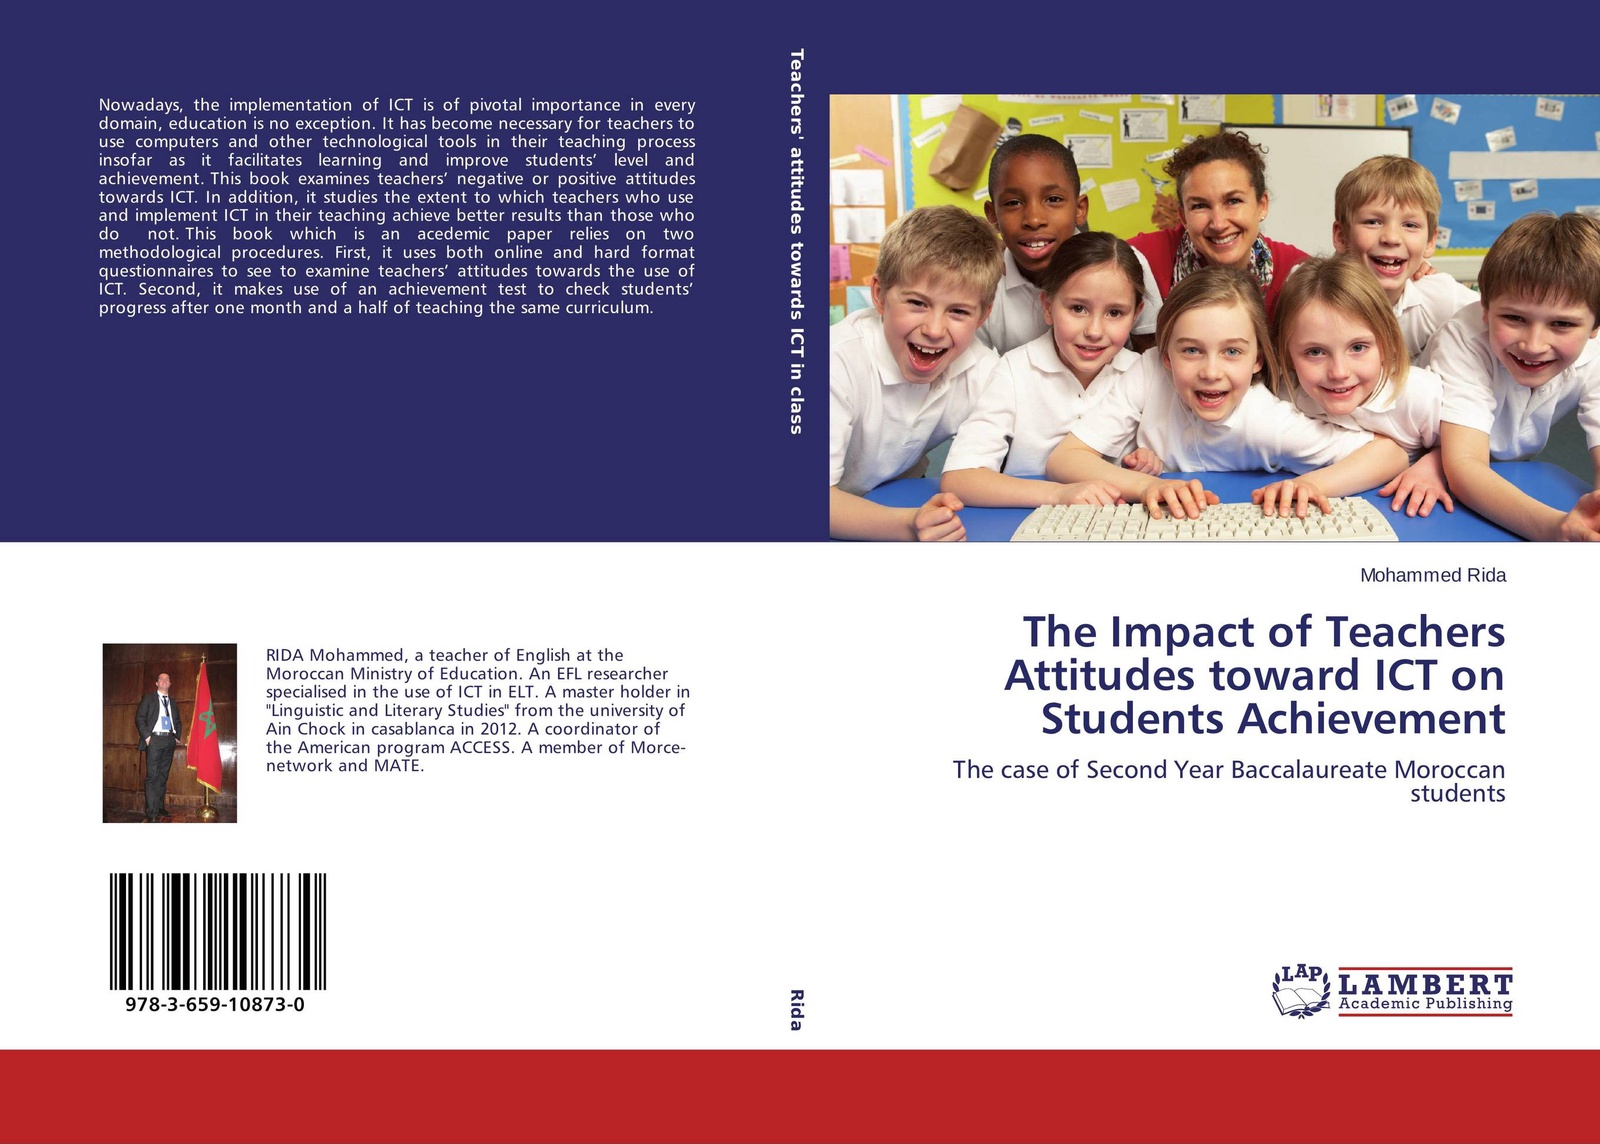 Mohammed Rida The Impact of Teachers Attitudes toward ICT on Students Achievement цена